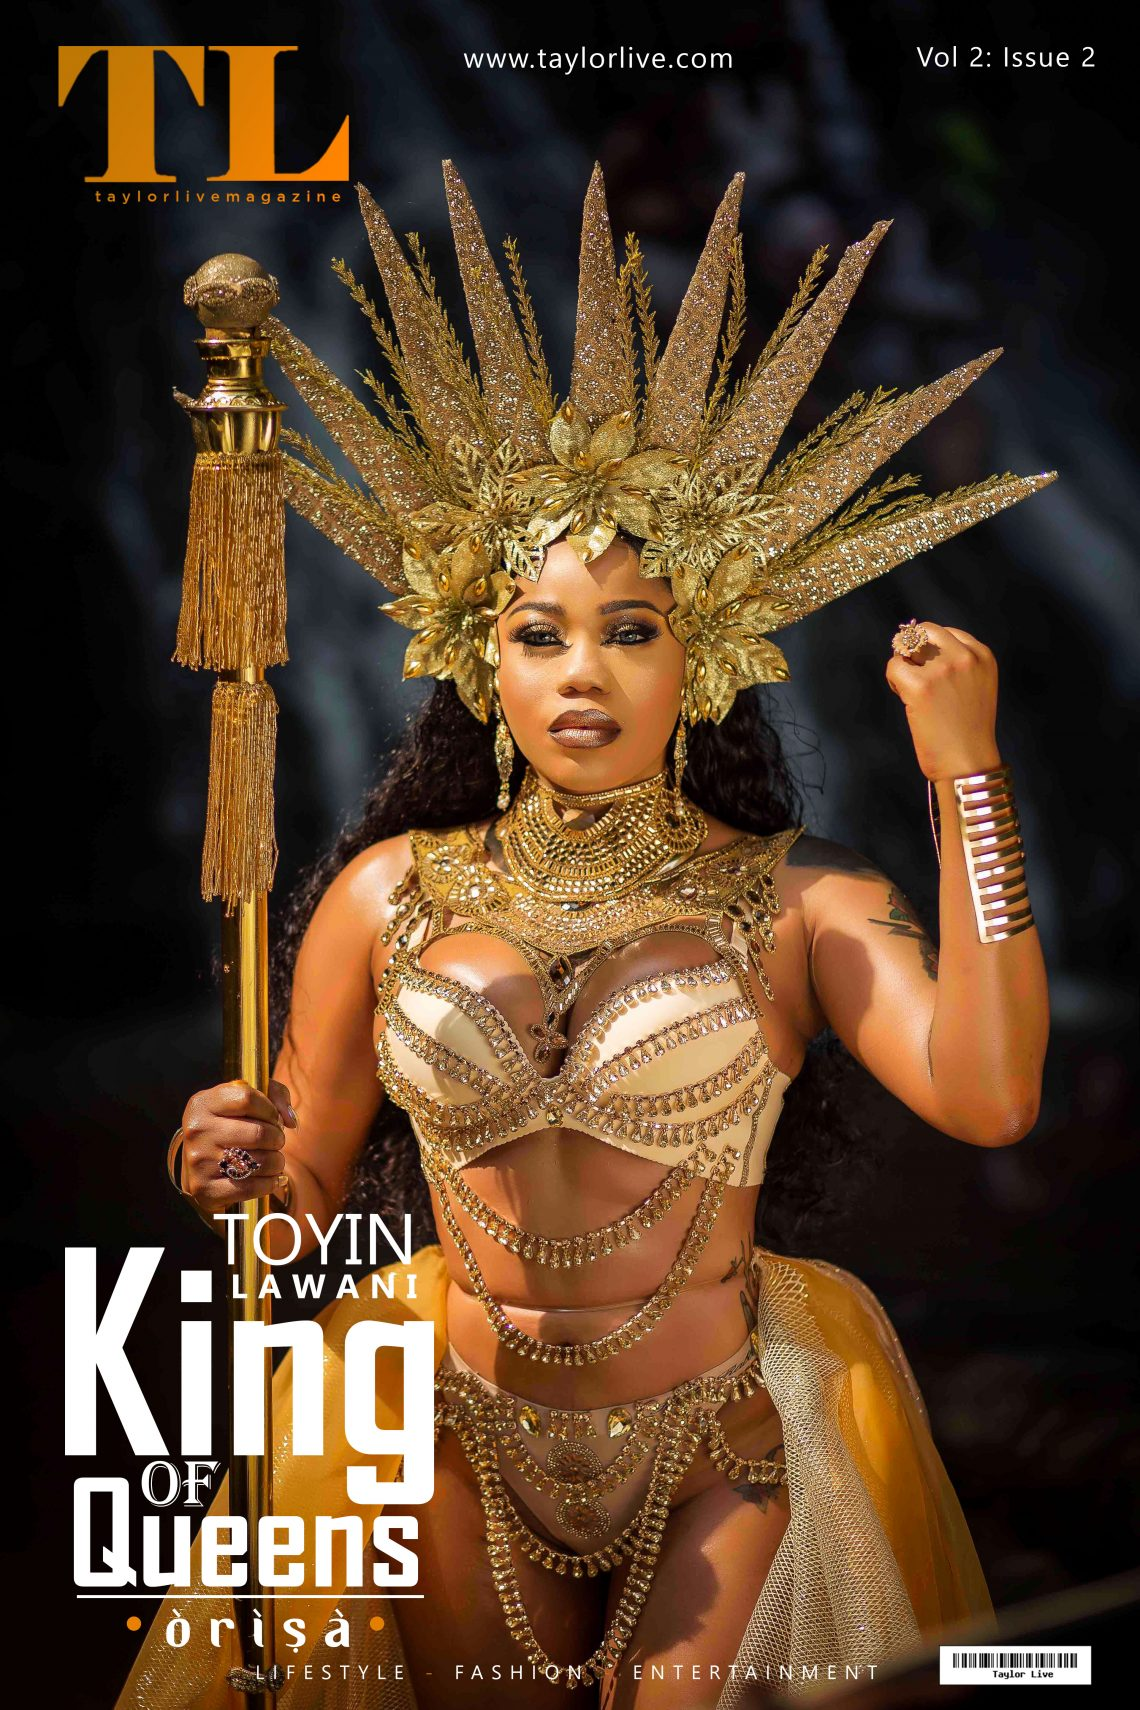 """""""ORISA"""" KING OF QUEENS  Toyin Lawani popularly known as Tiannah Covers Taylor Live Magazine's Latest Issue (TL Magazine)."""